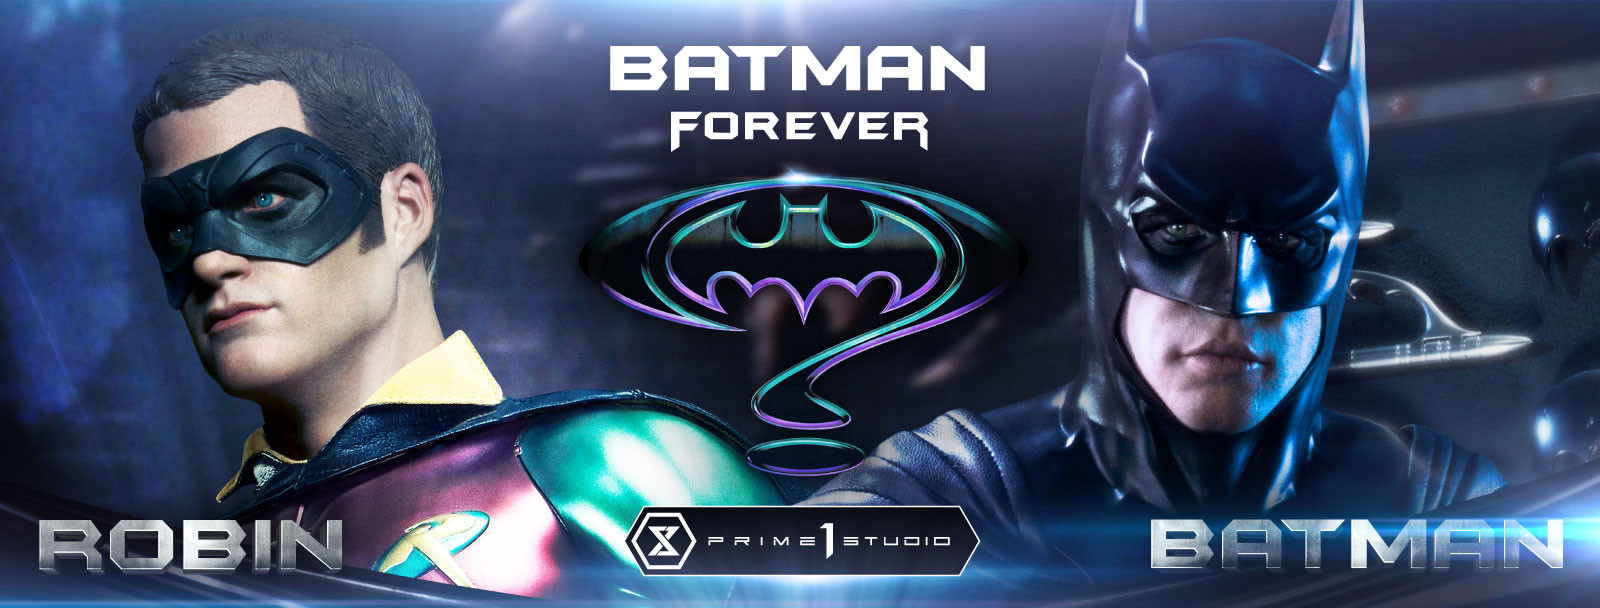 Batman Forever Campaign - Issue solved